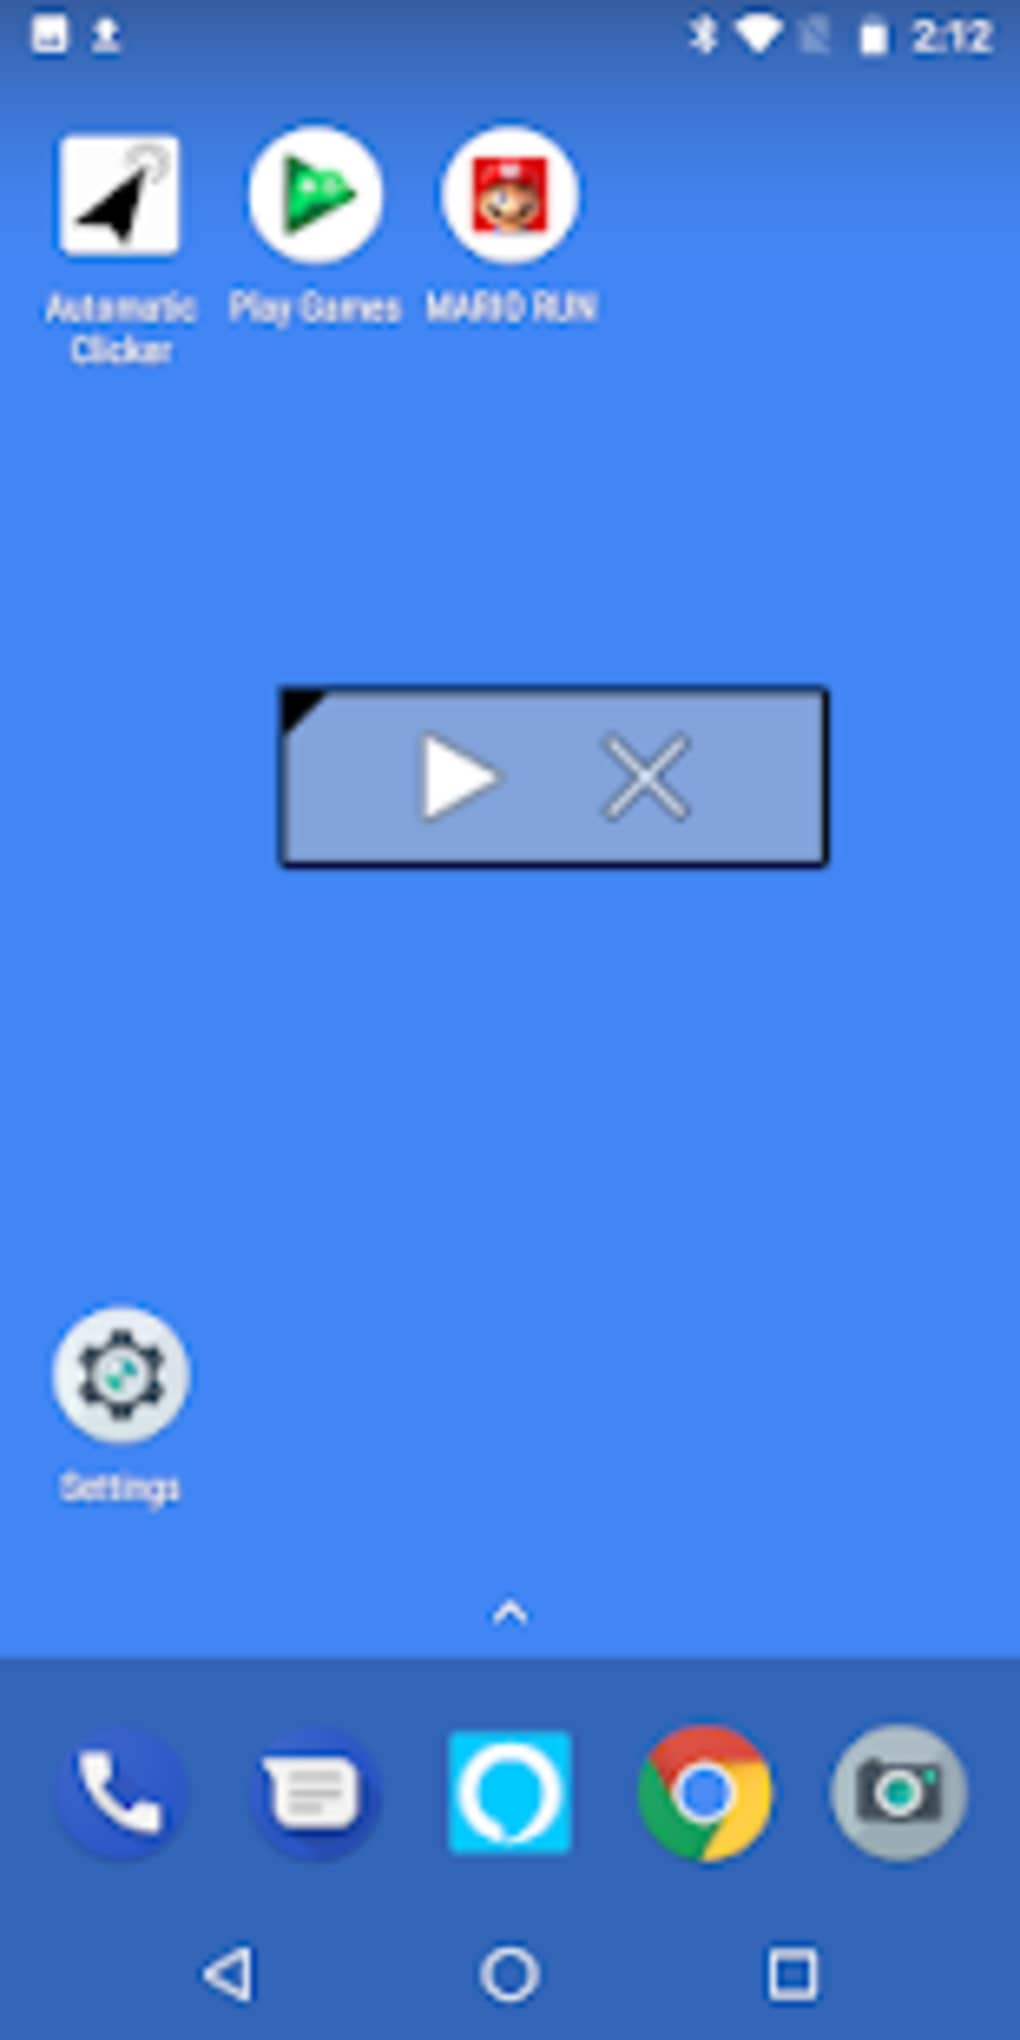 Automatic Clicker for Android - Download